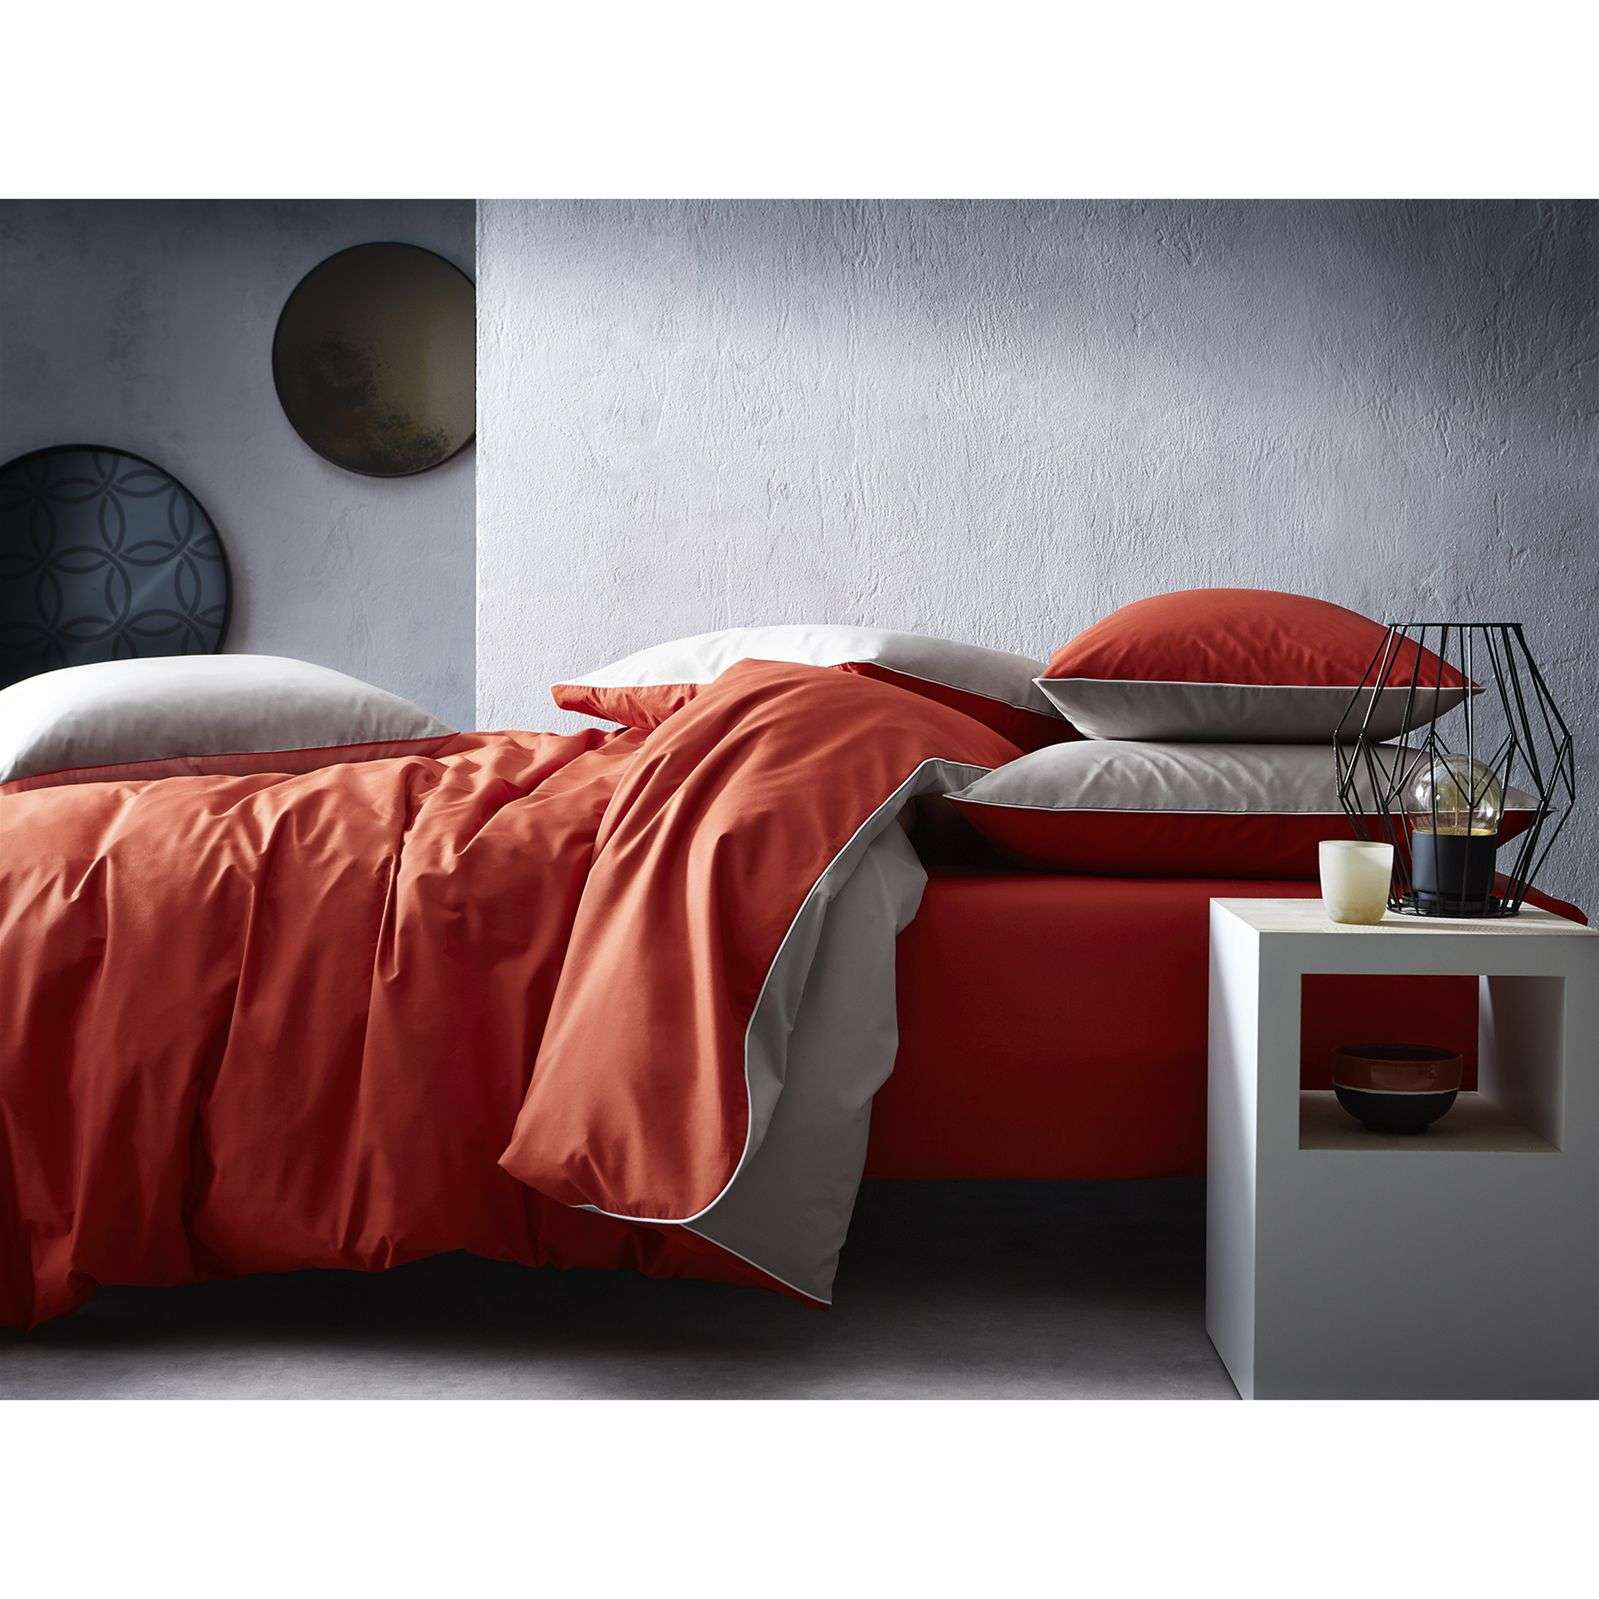 blanc cerise complicite gourmande housse de couette percale 80 fils cm complicite. Black Bedroom Furniture Sets. Home Design Ideas